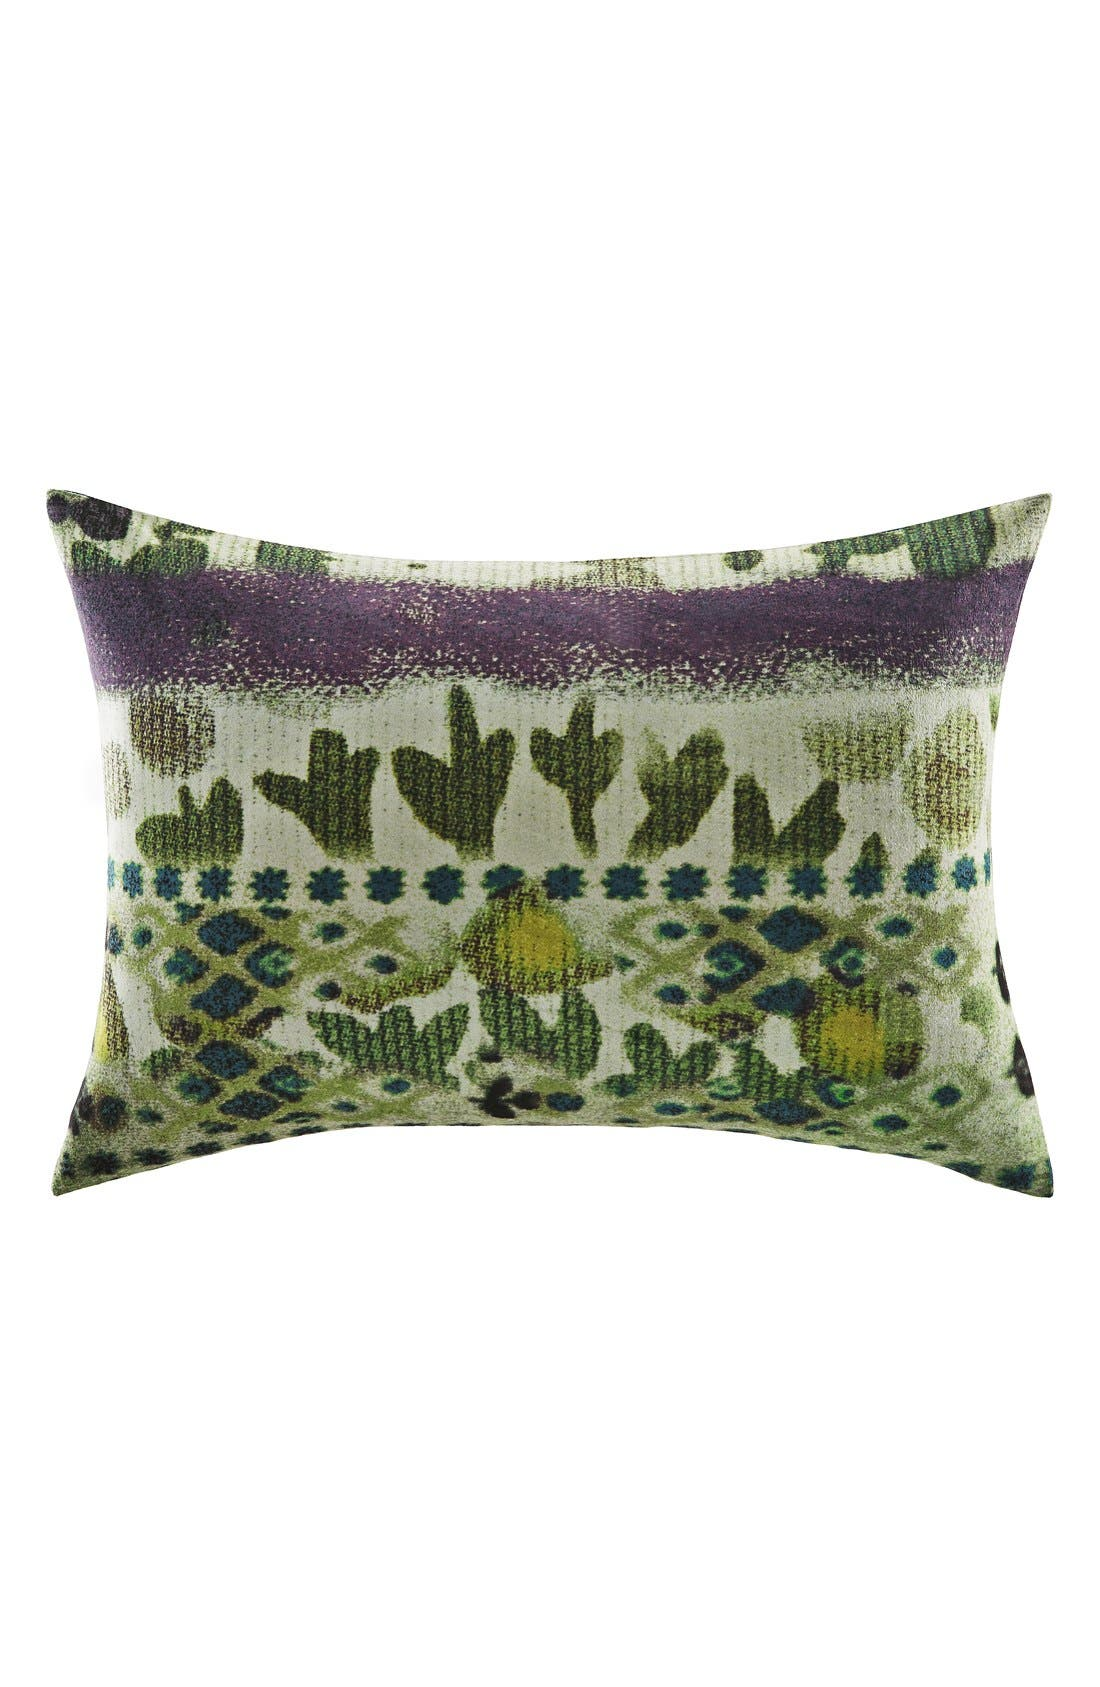 Alternate Image 1 Selected - Tracy Porter® For Poetic Wanderlust® 'Hazel' Velvet Pillow